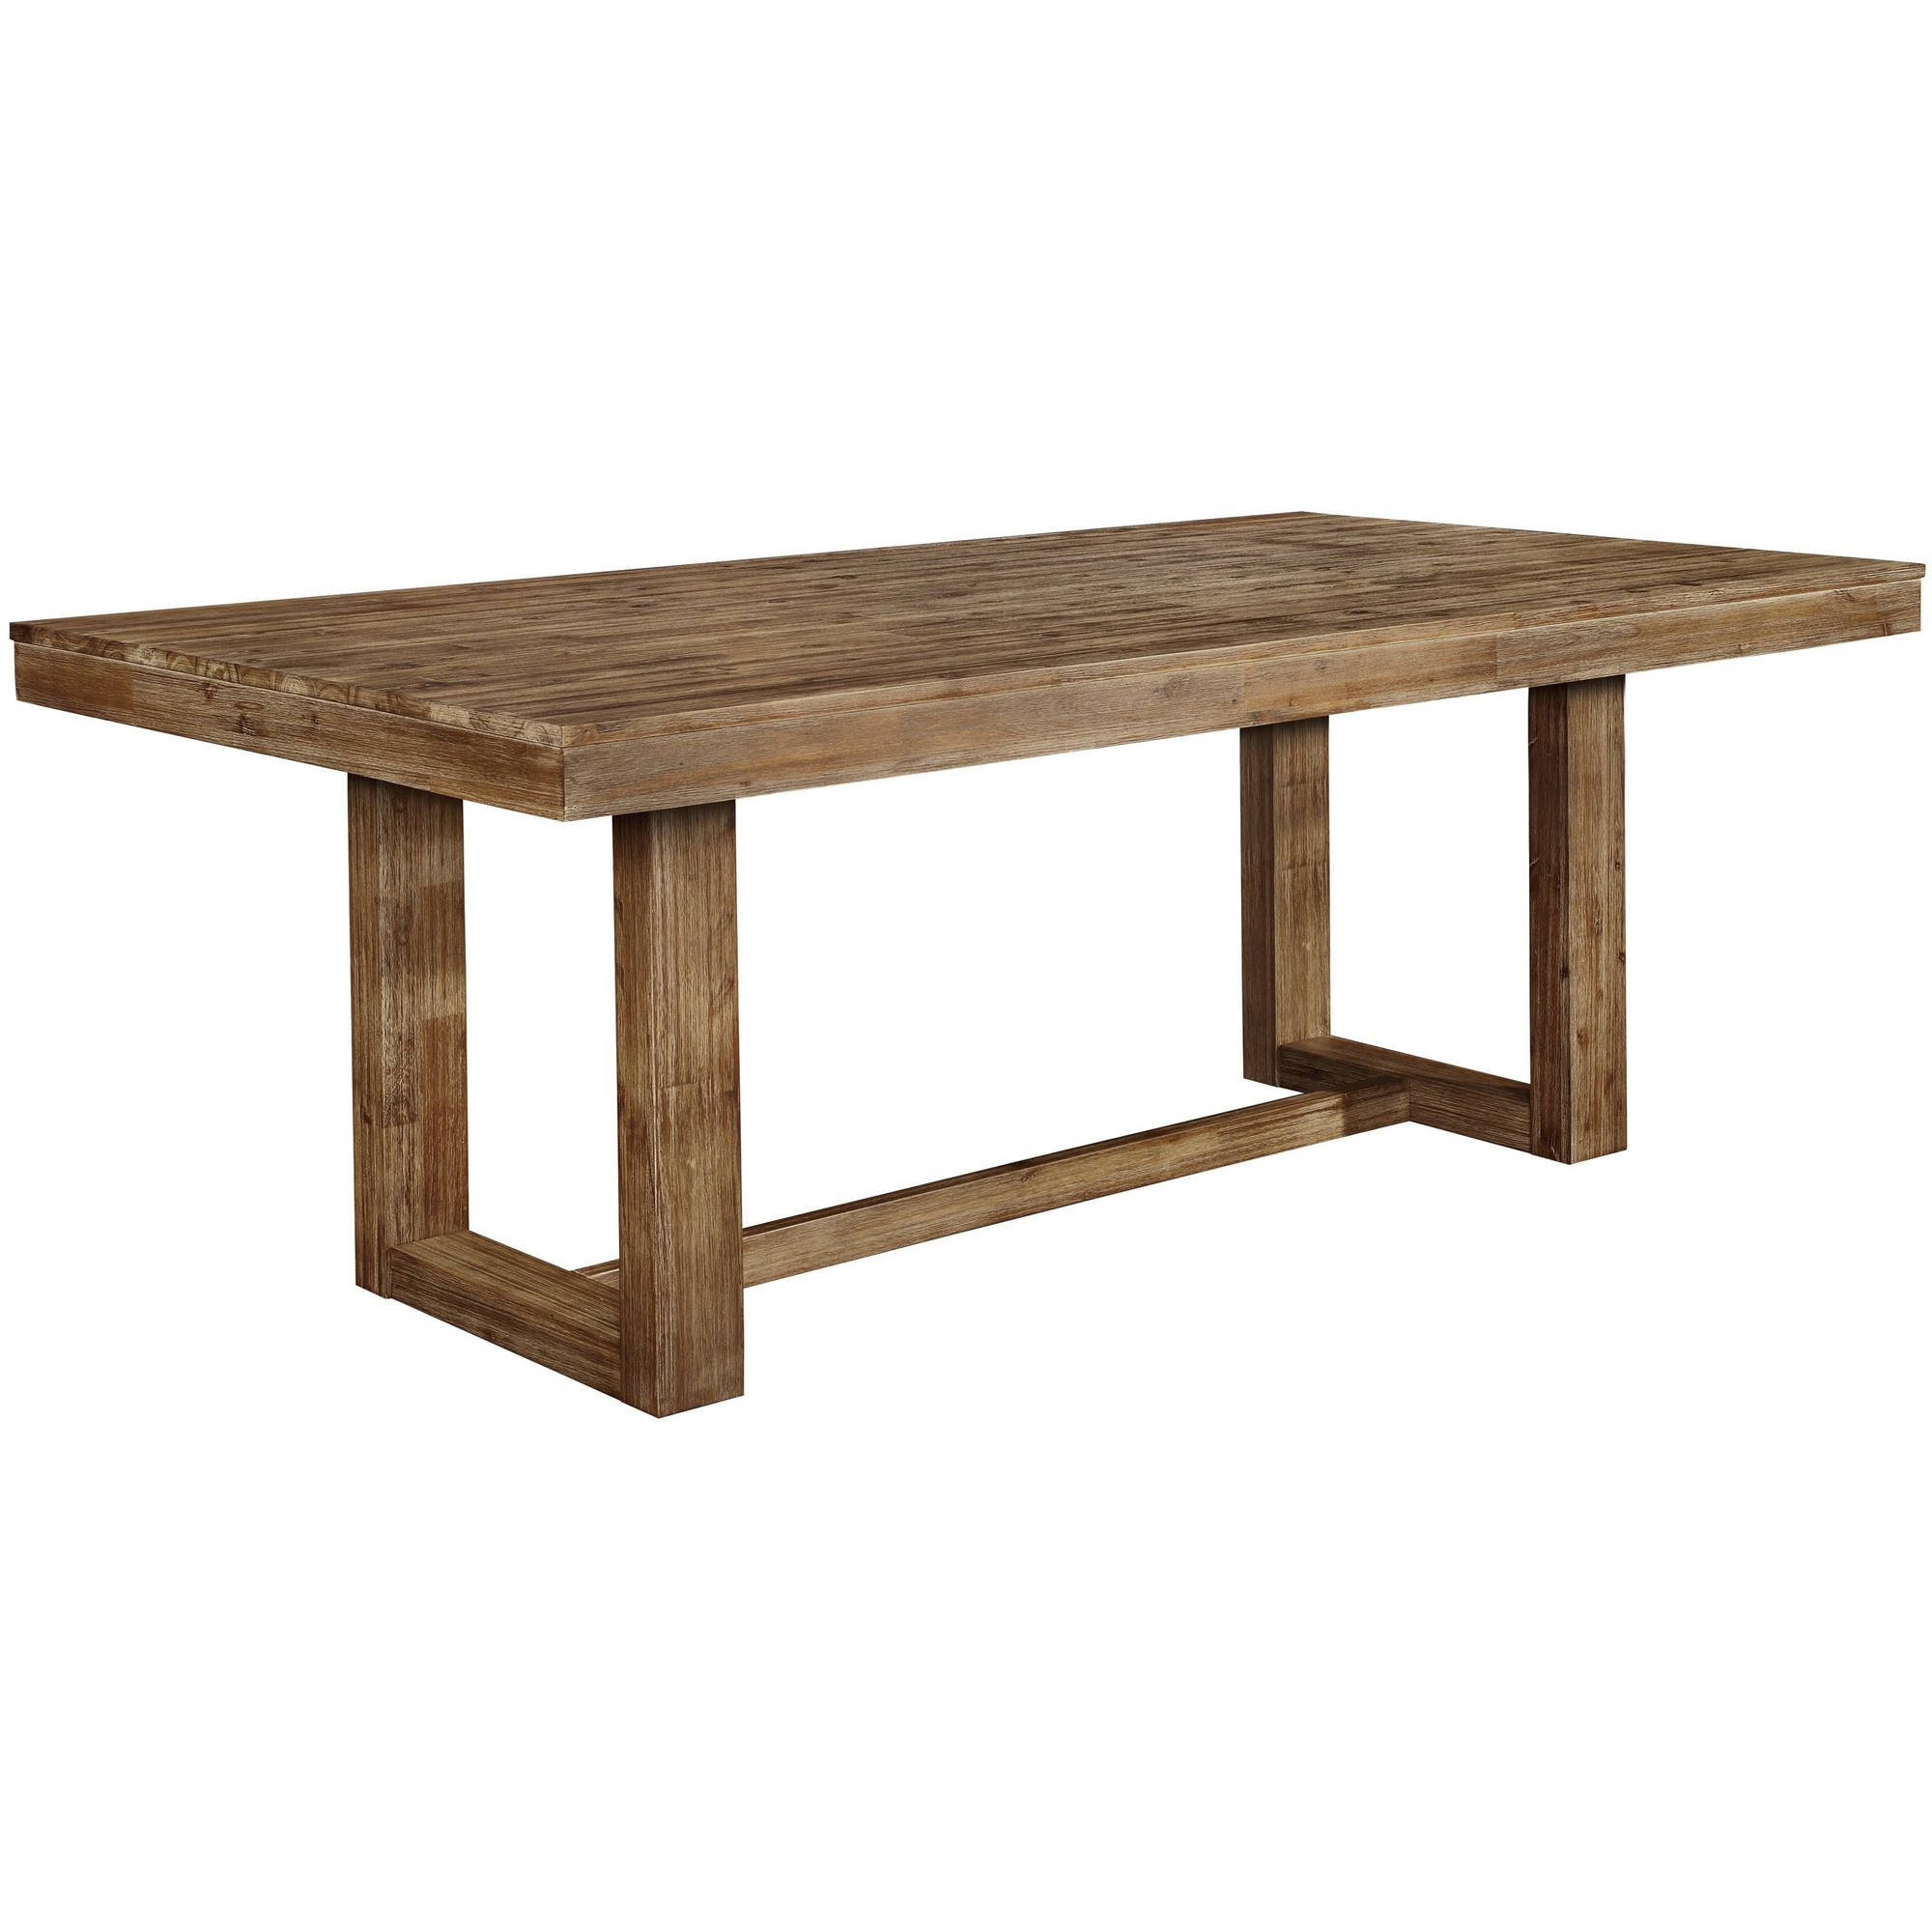 Table Furniture coaster company elmwood collection, dining table - walmart